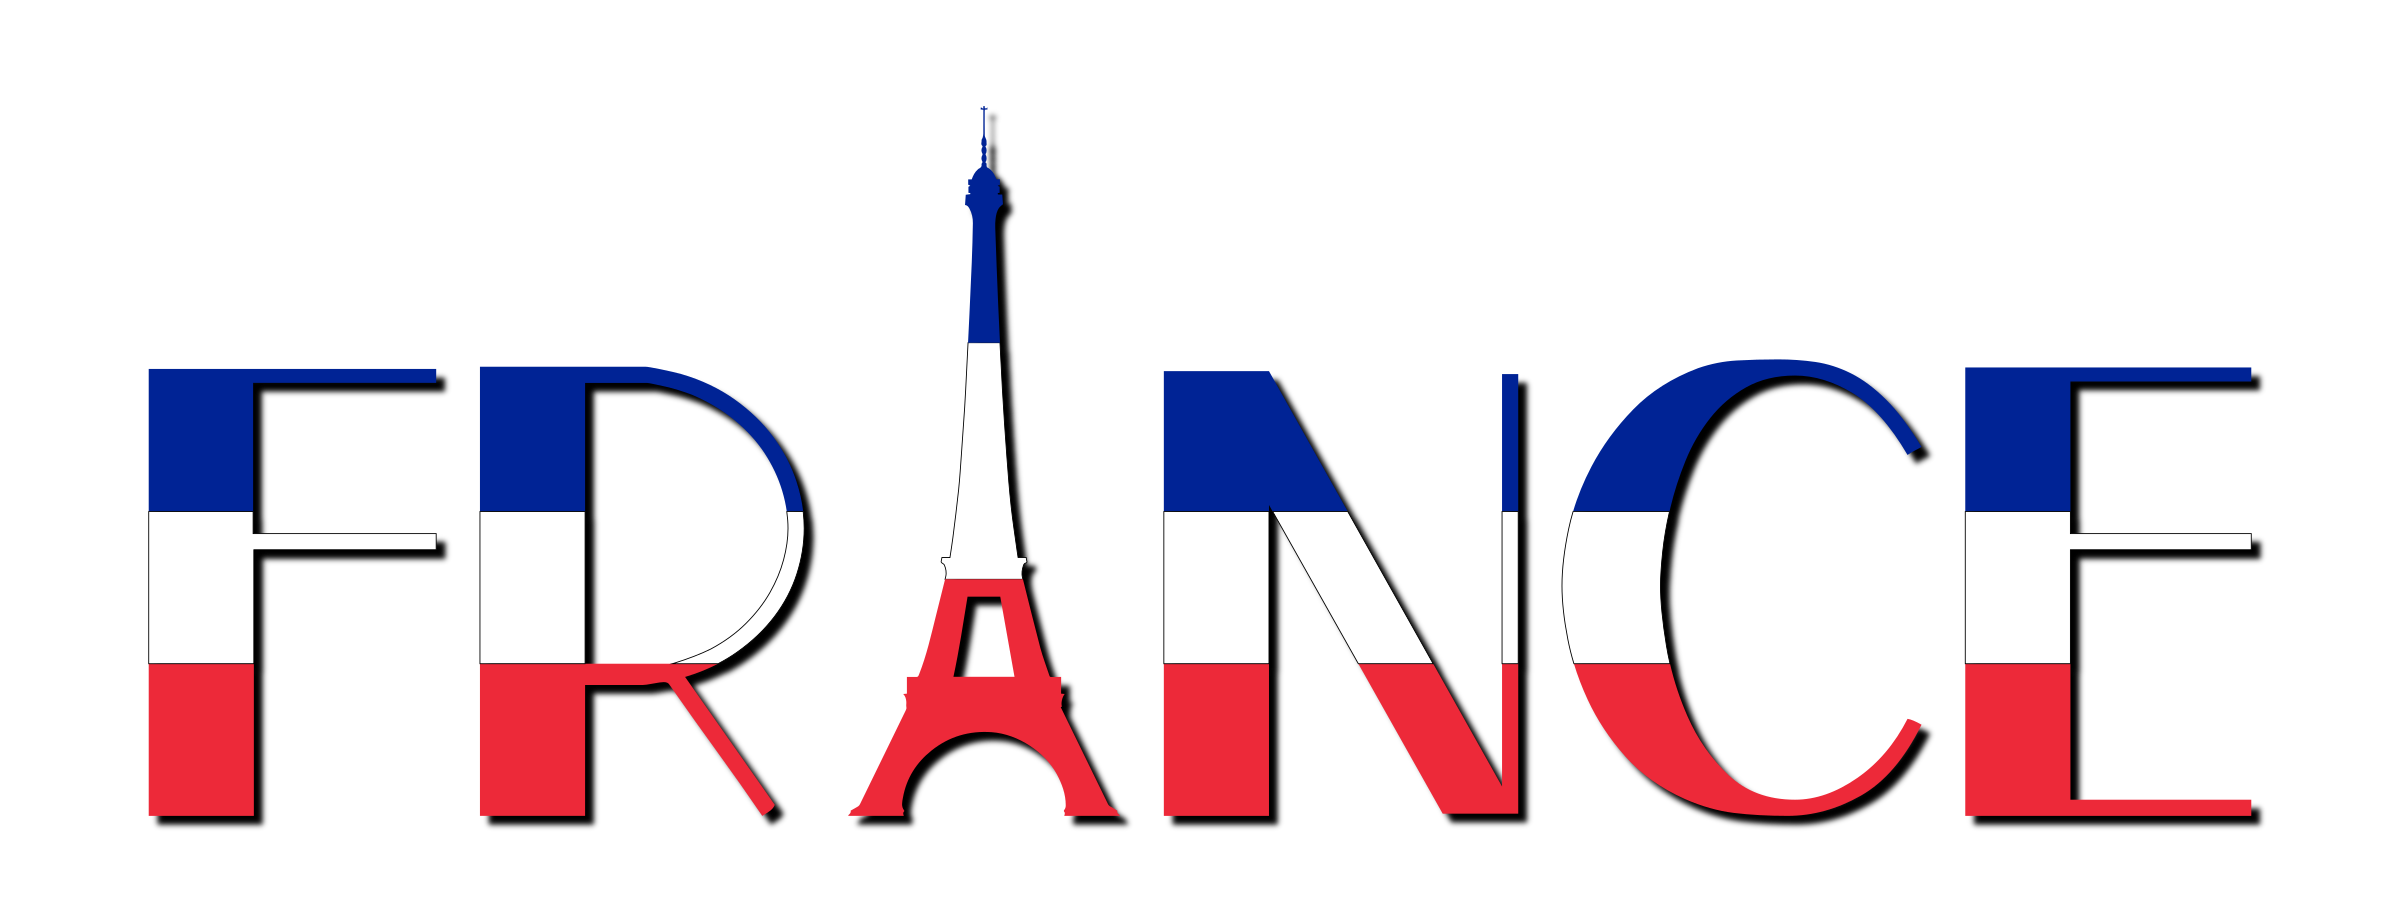 France typography with shadow. French clipart icon